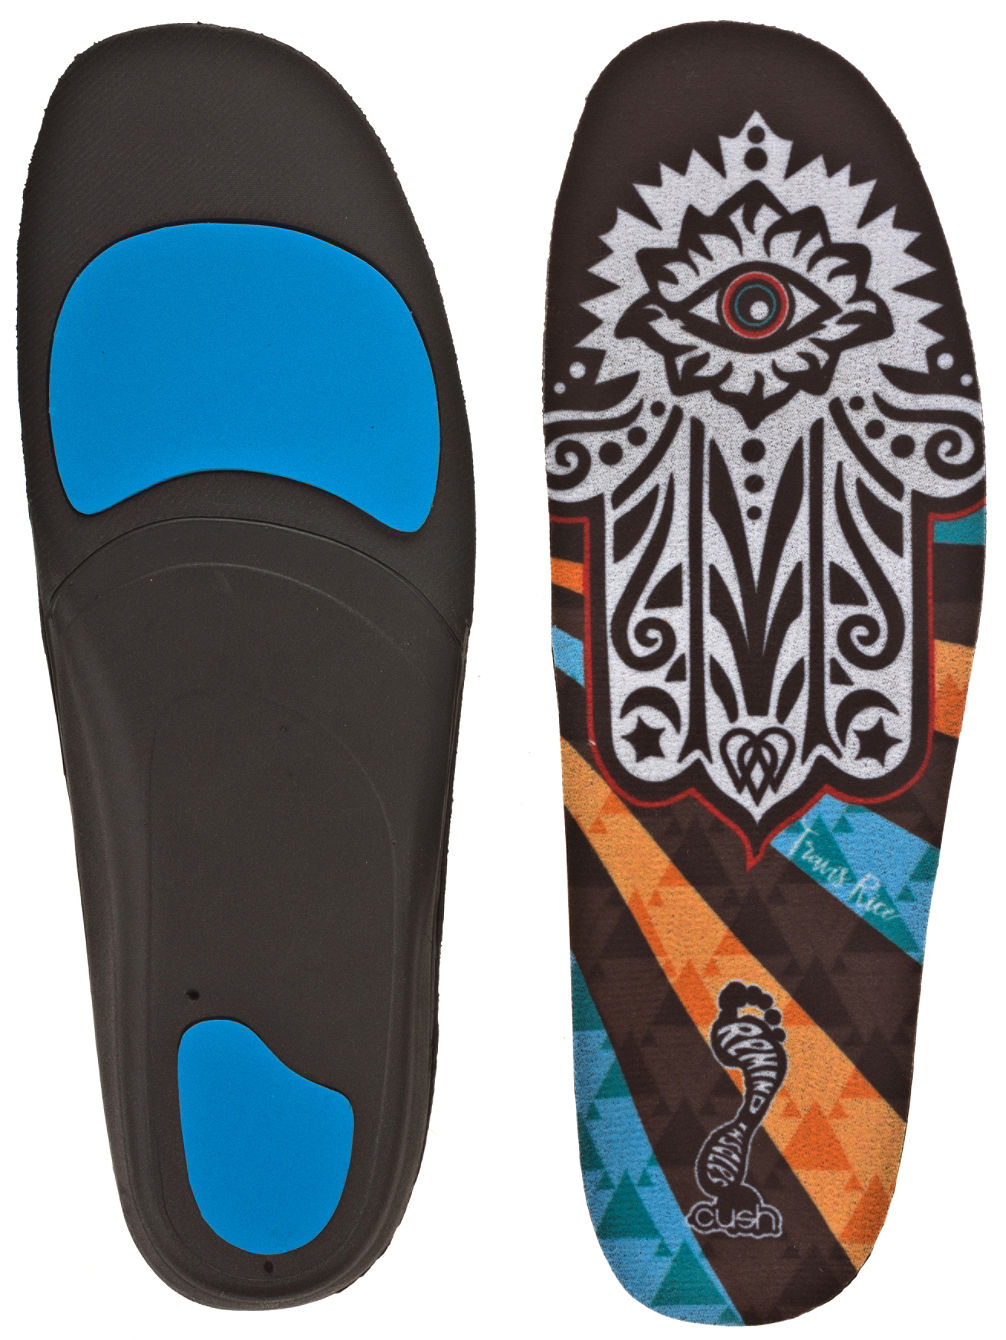 remind-insoles-cush-travis-rice-orthotic-insoles